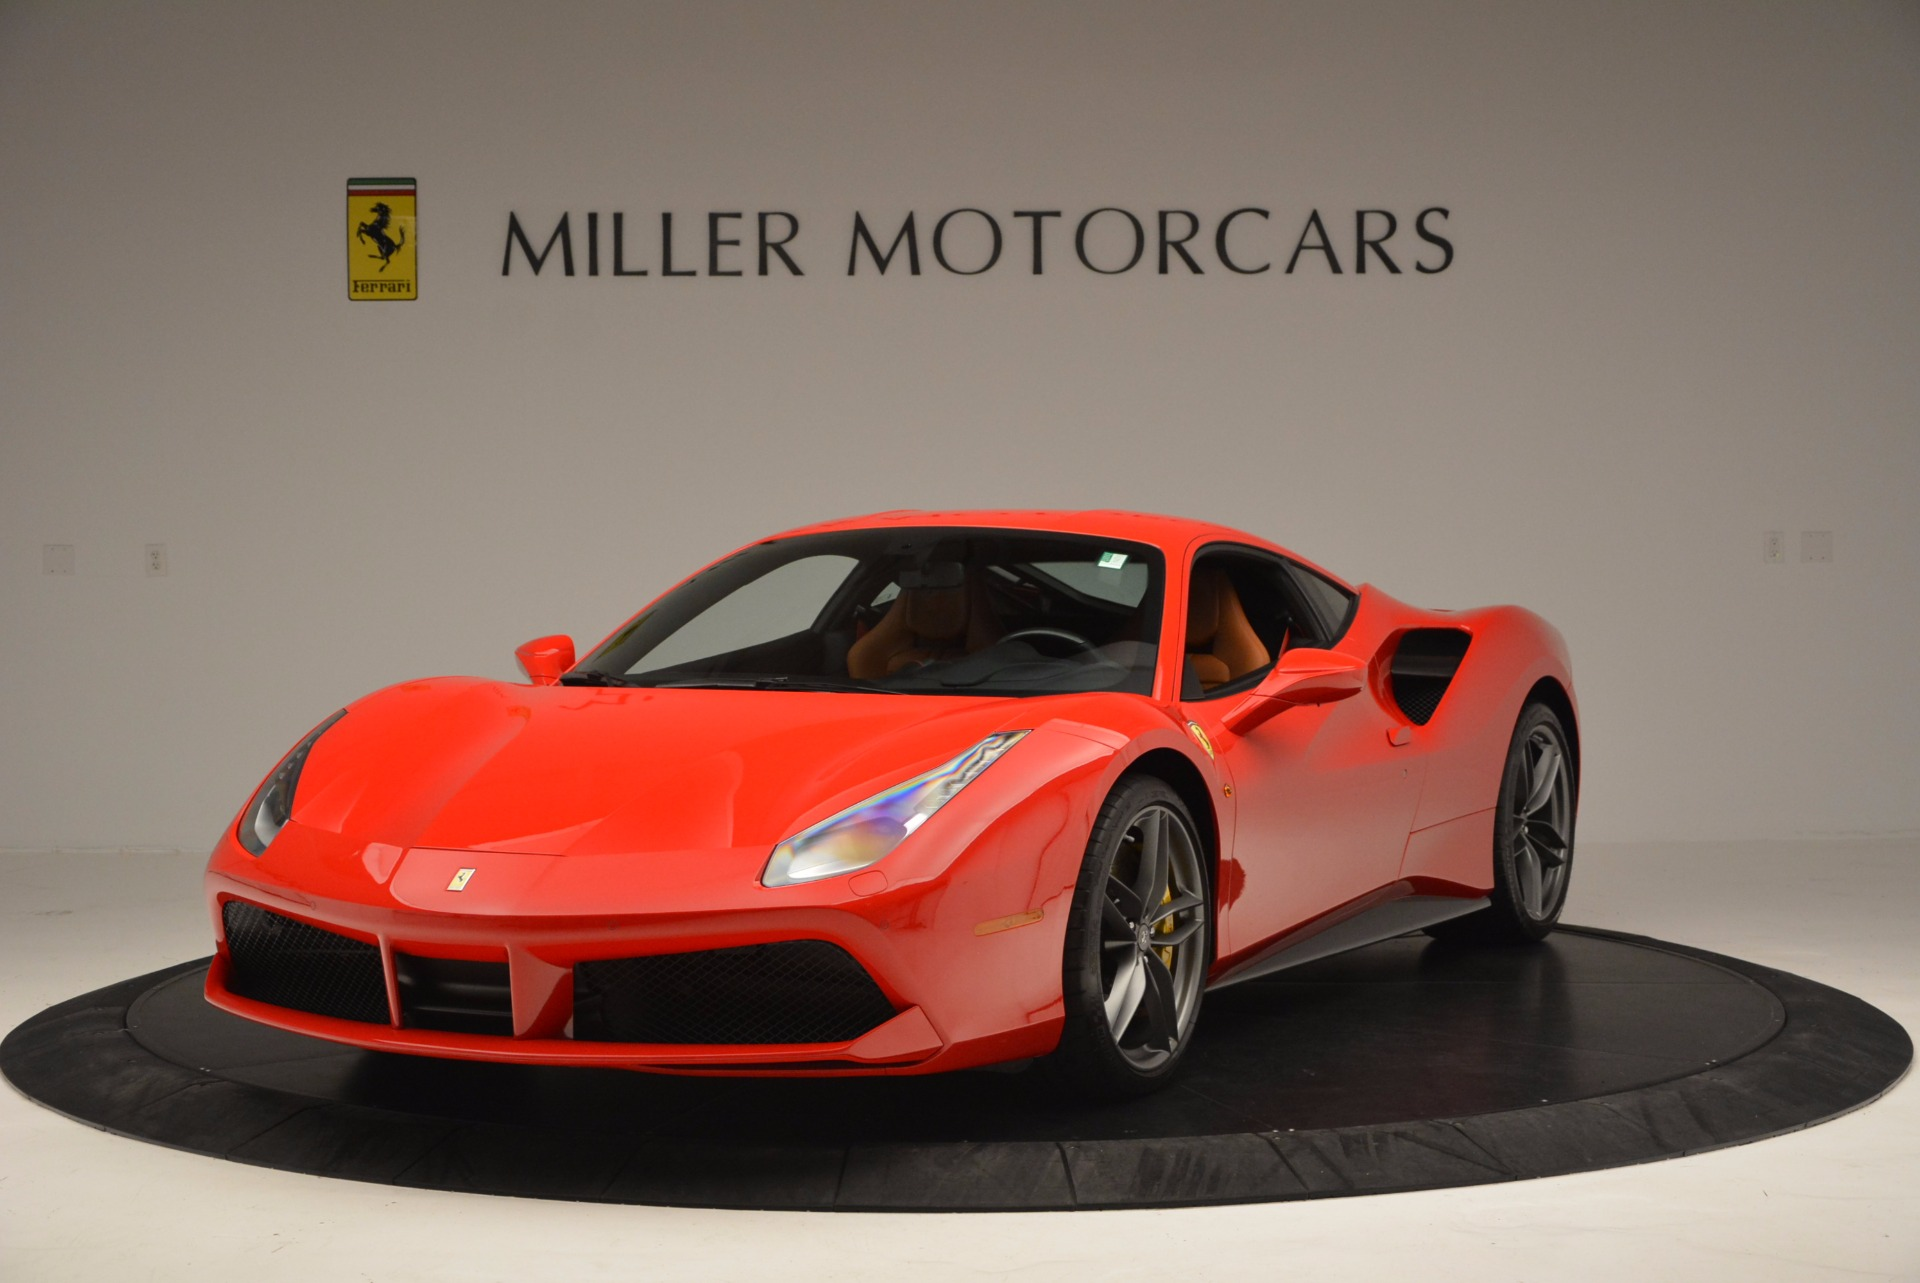 credit deals rent spider from approved taxes ultra ferrari acquisition lease fee l down used stock with c payment initial merlin luxury htm plus months month car